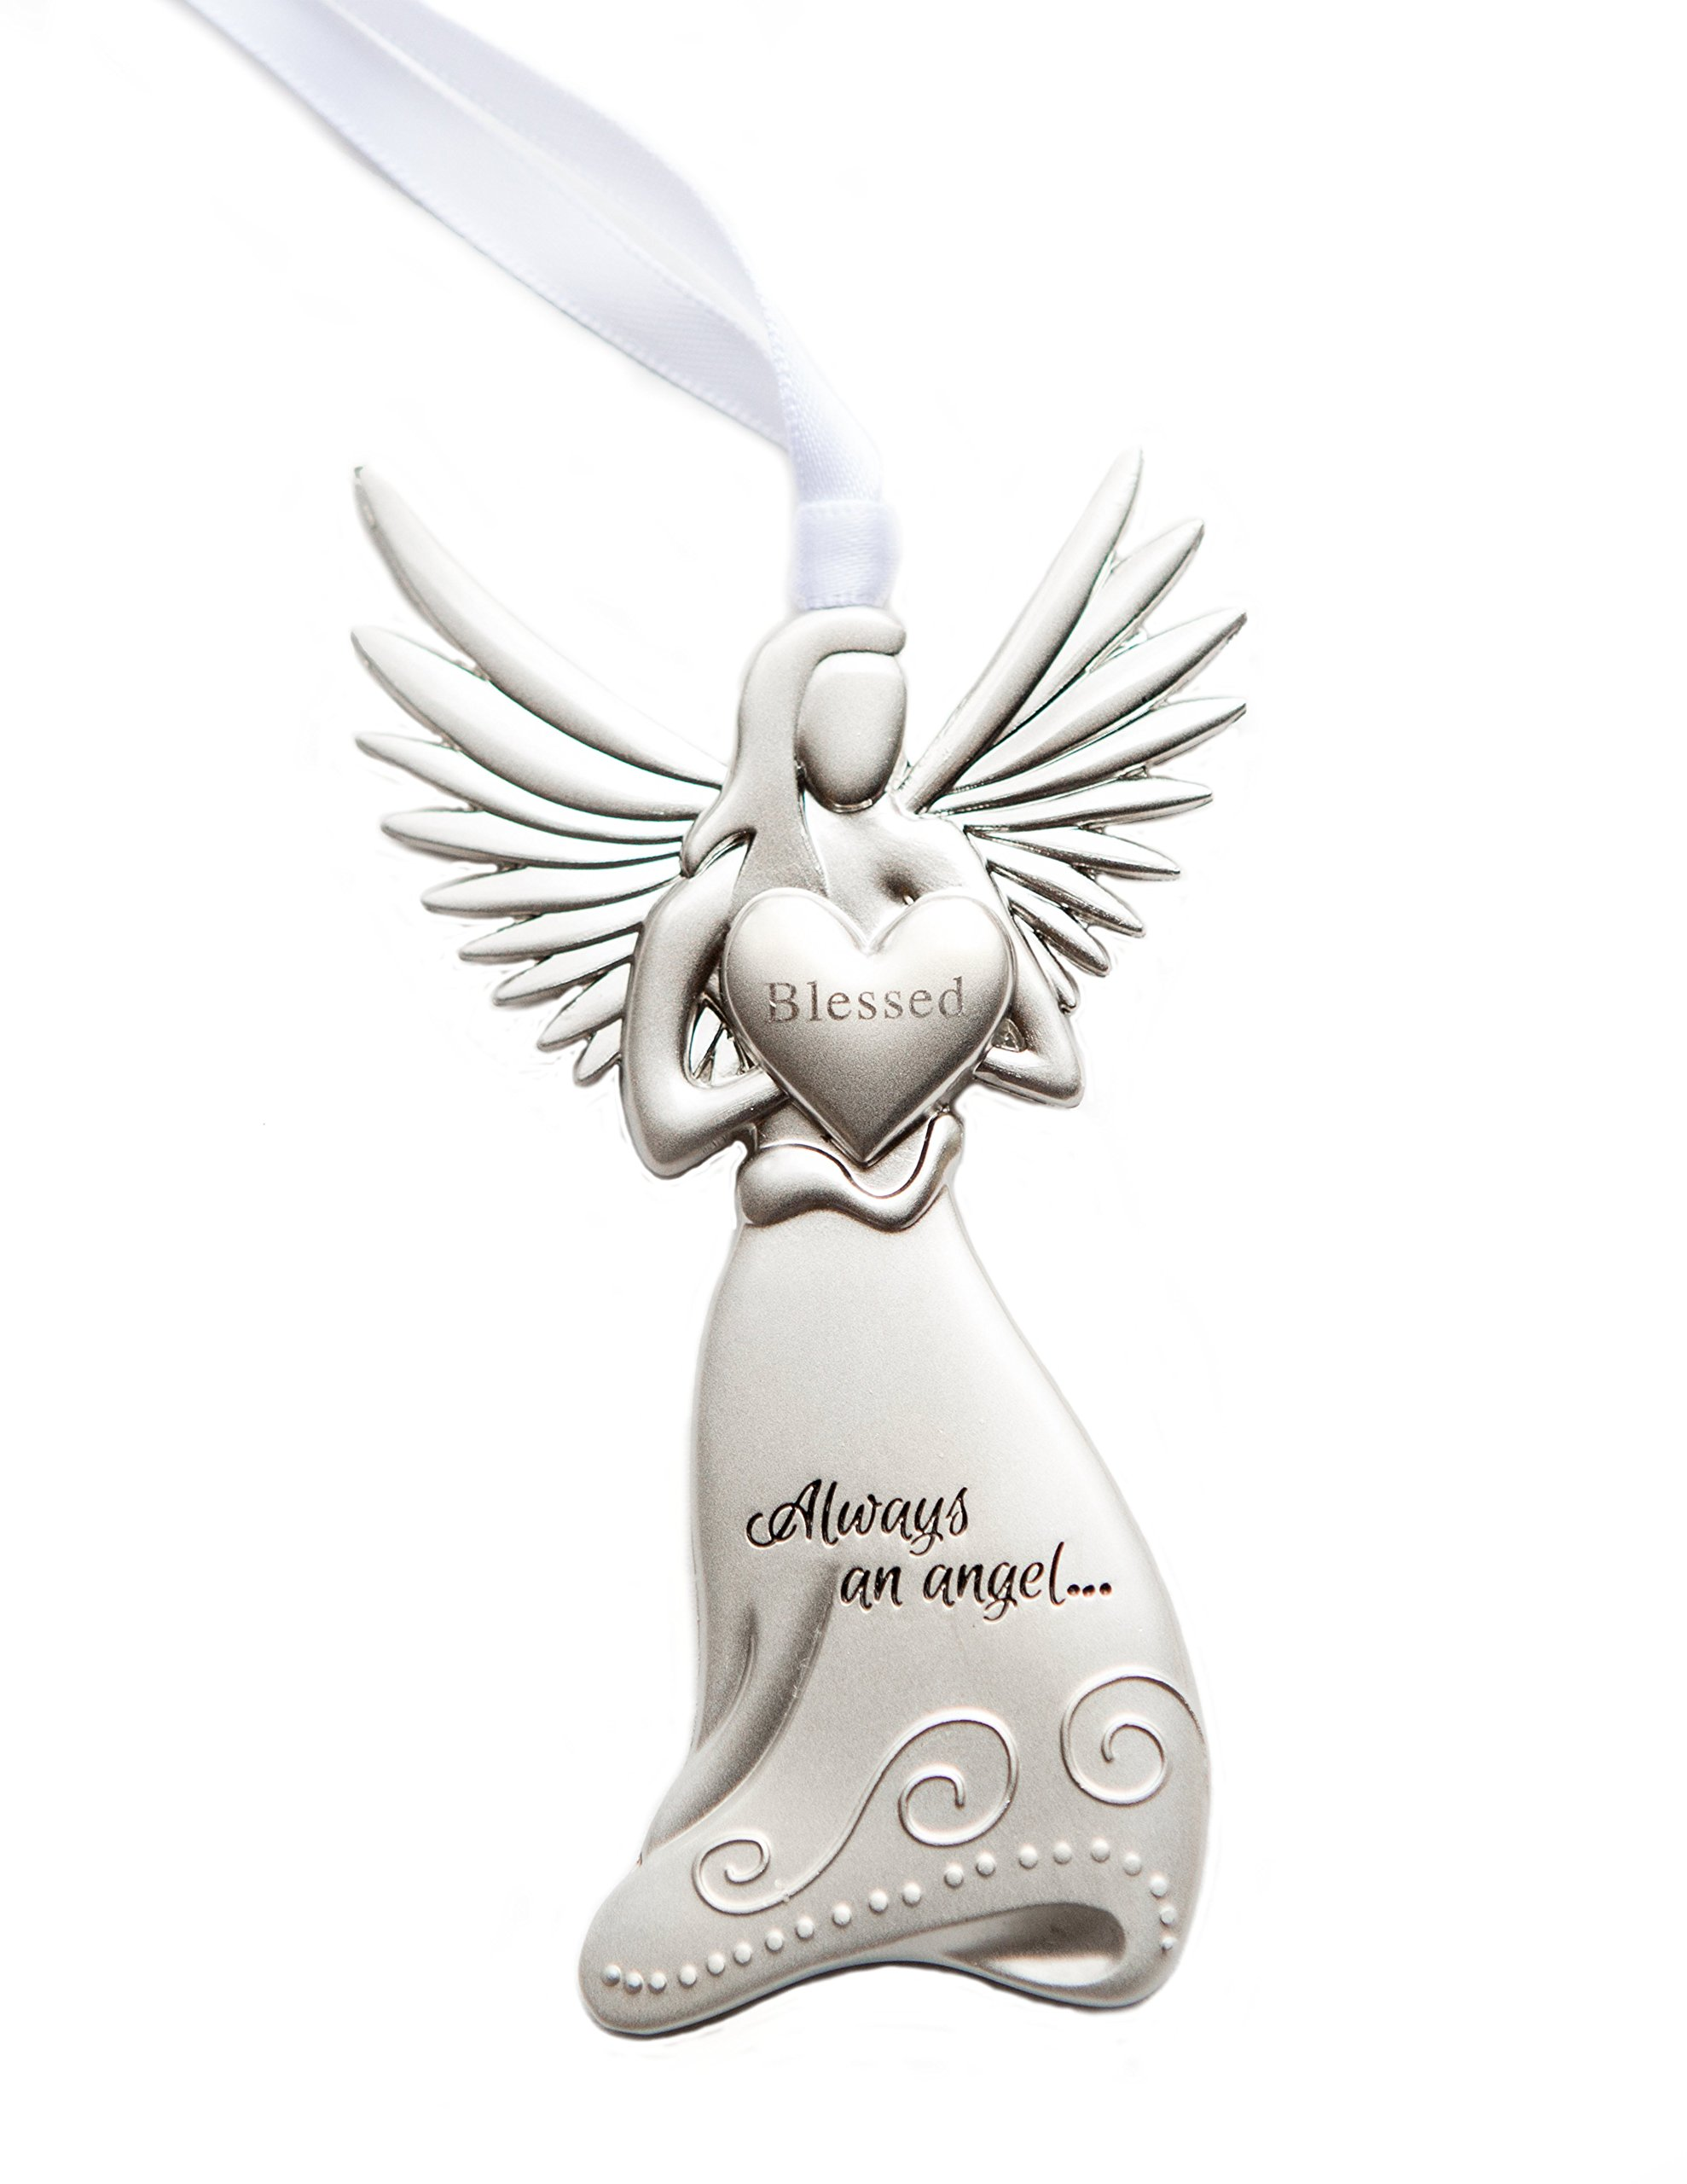 The Grandparent Gift Irish Baby Angel Ornament And Blessing